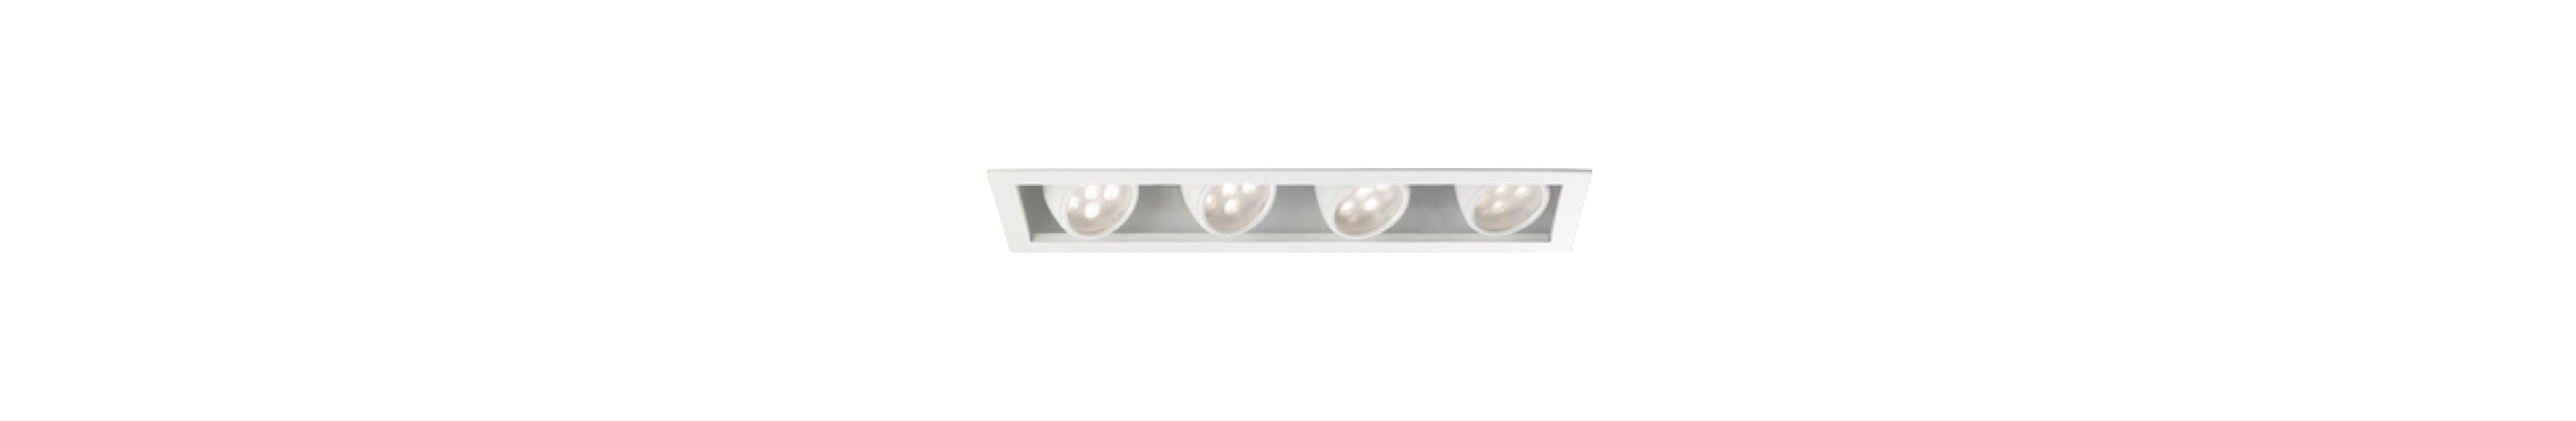 WAC Lighting MT-LED418F-CWHS Multiple Spot 4500K High Output LED